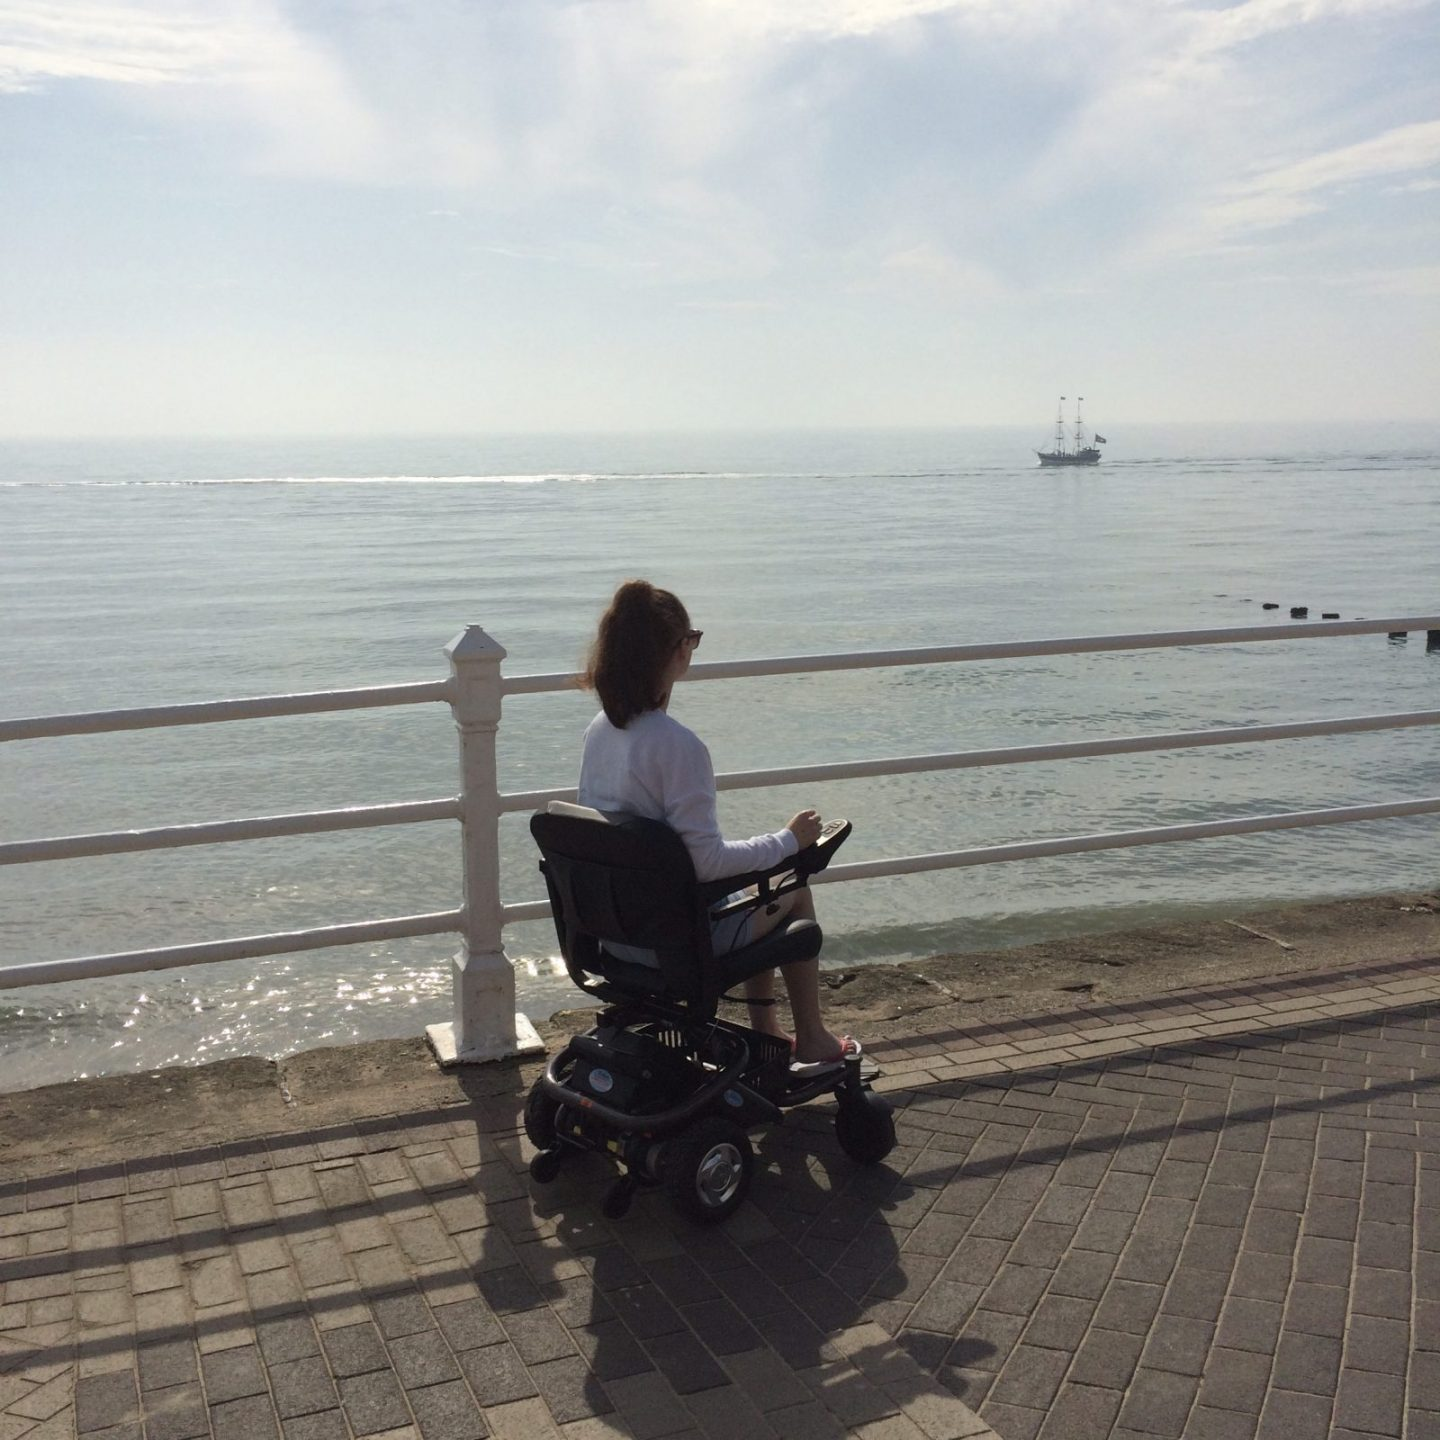 pippa using small black power-chair along the seafront, pippa turned away and looking out to sea which is visible in background